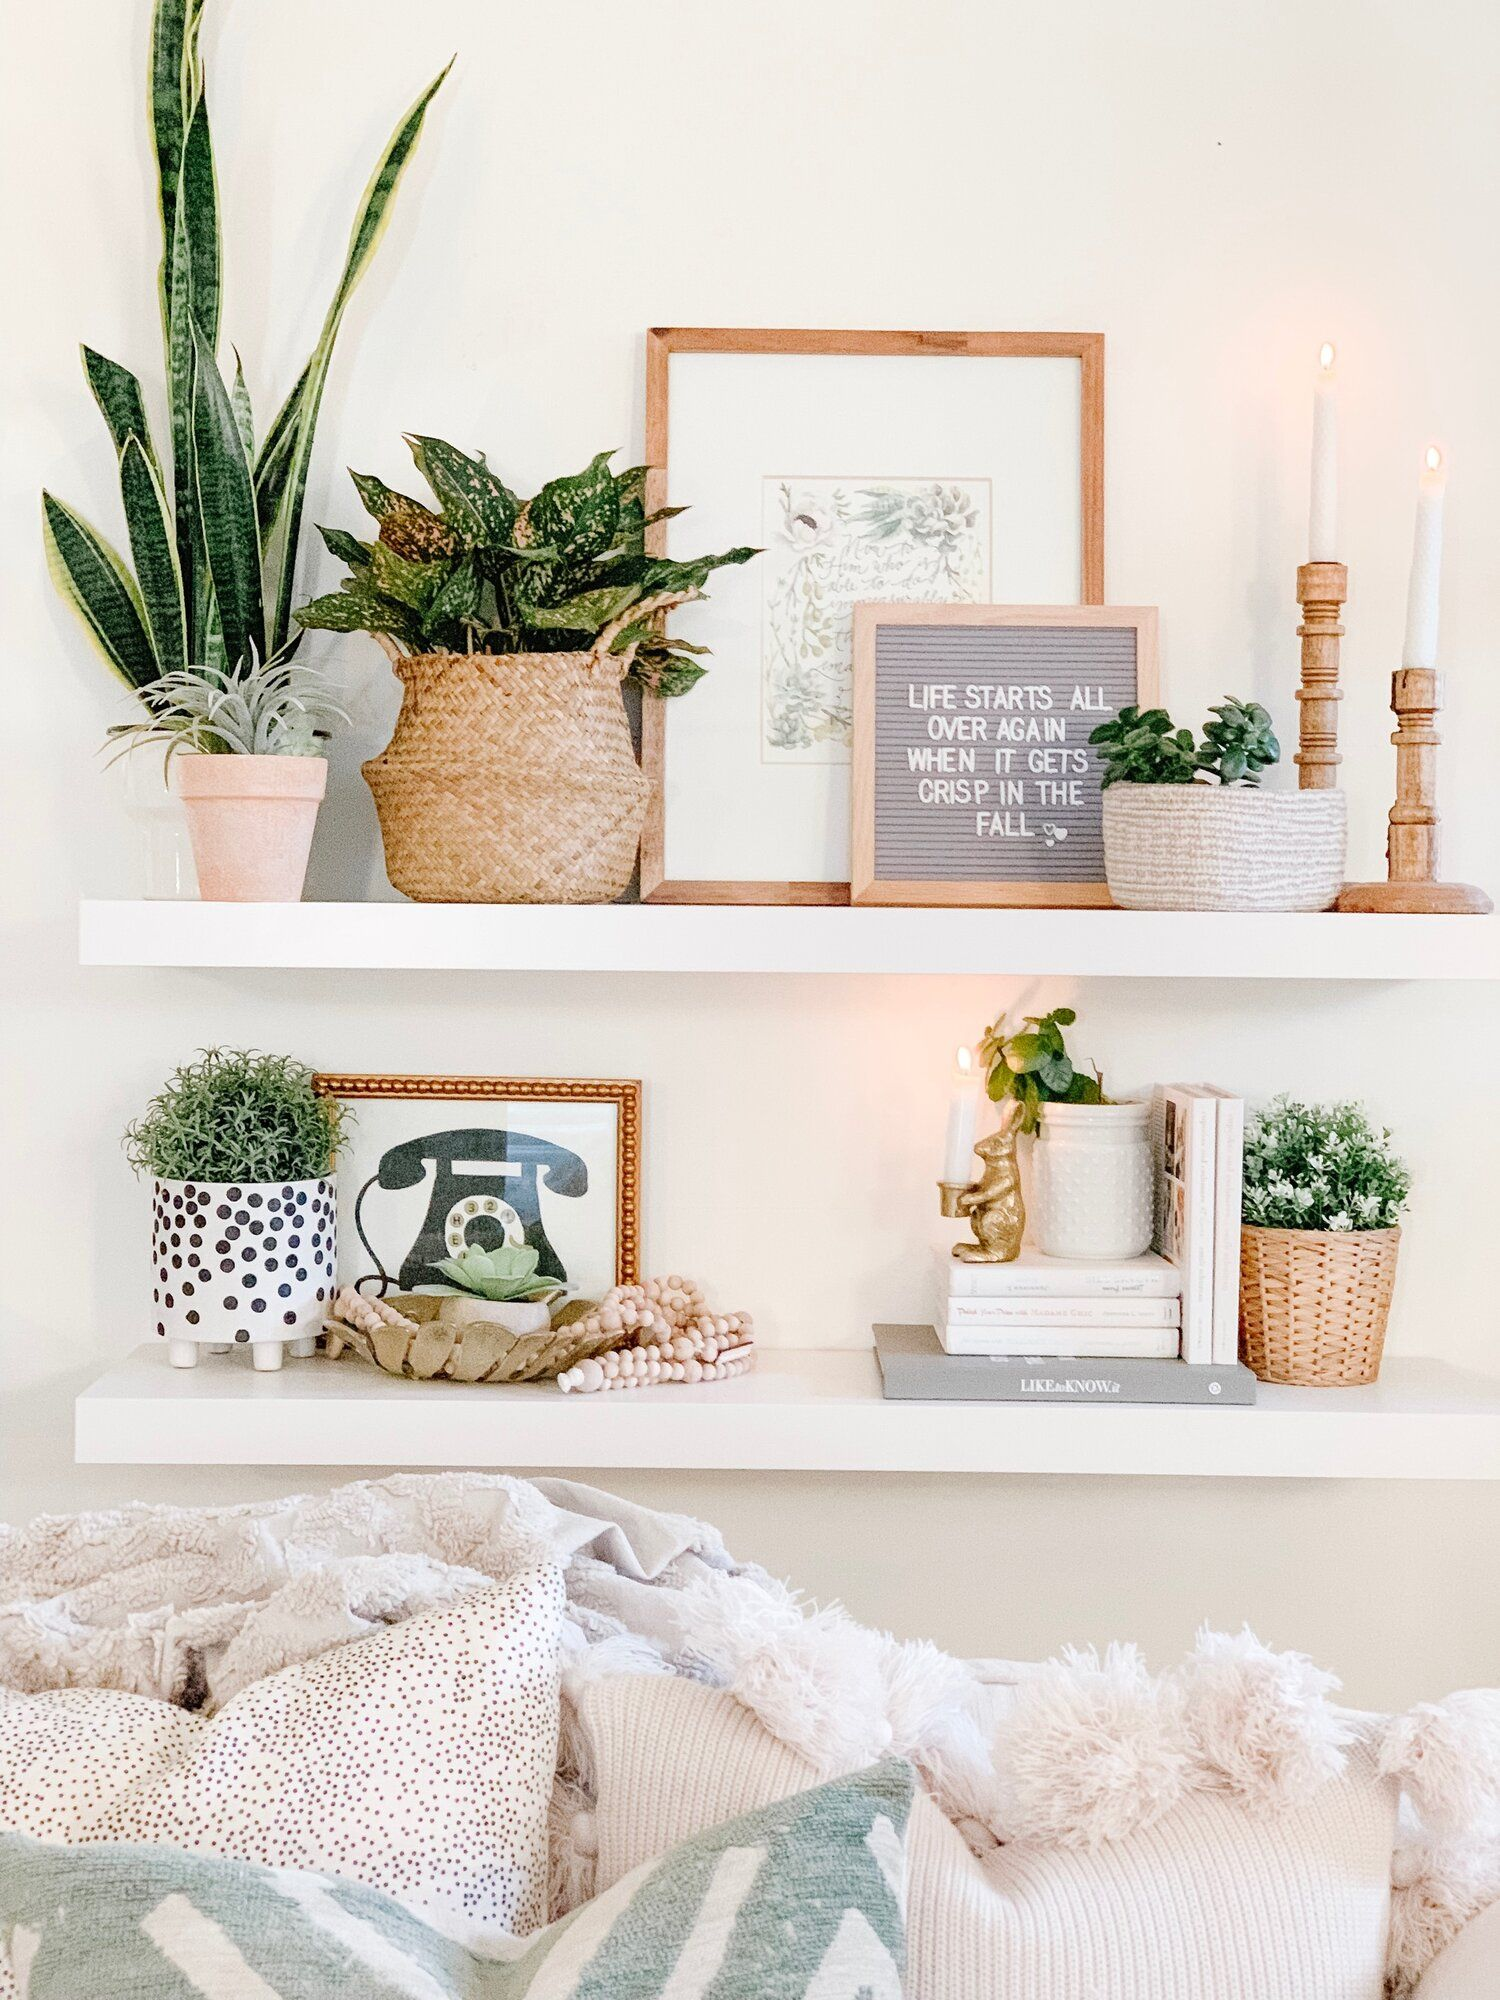 Living Room Shelf Decor In 2020 Living Room Shelves Shelf Decor